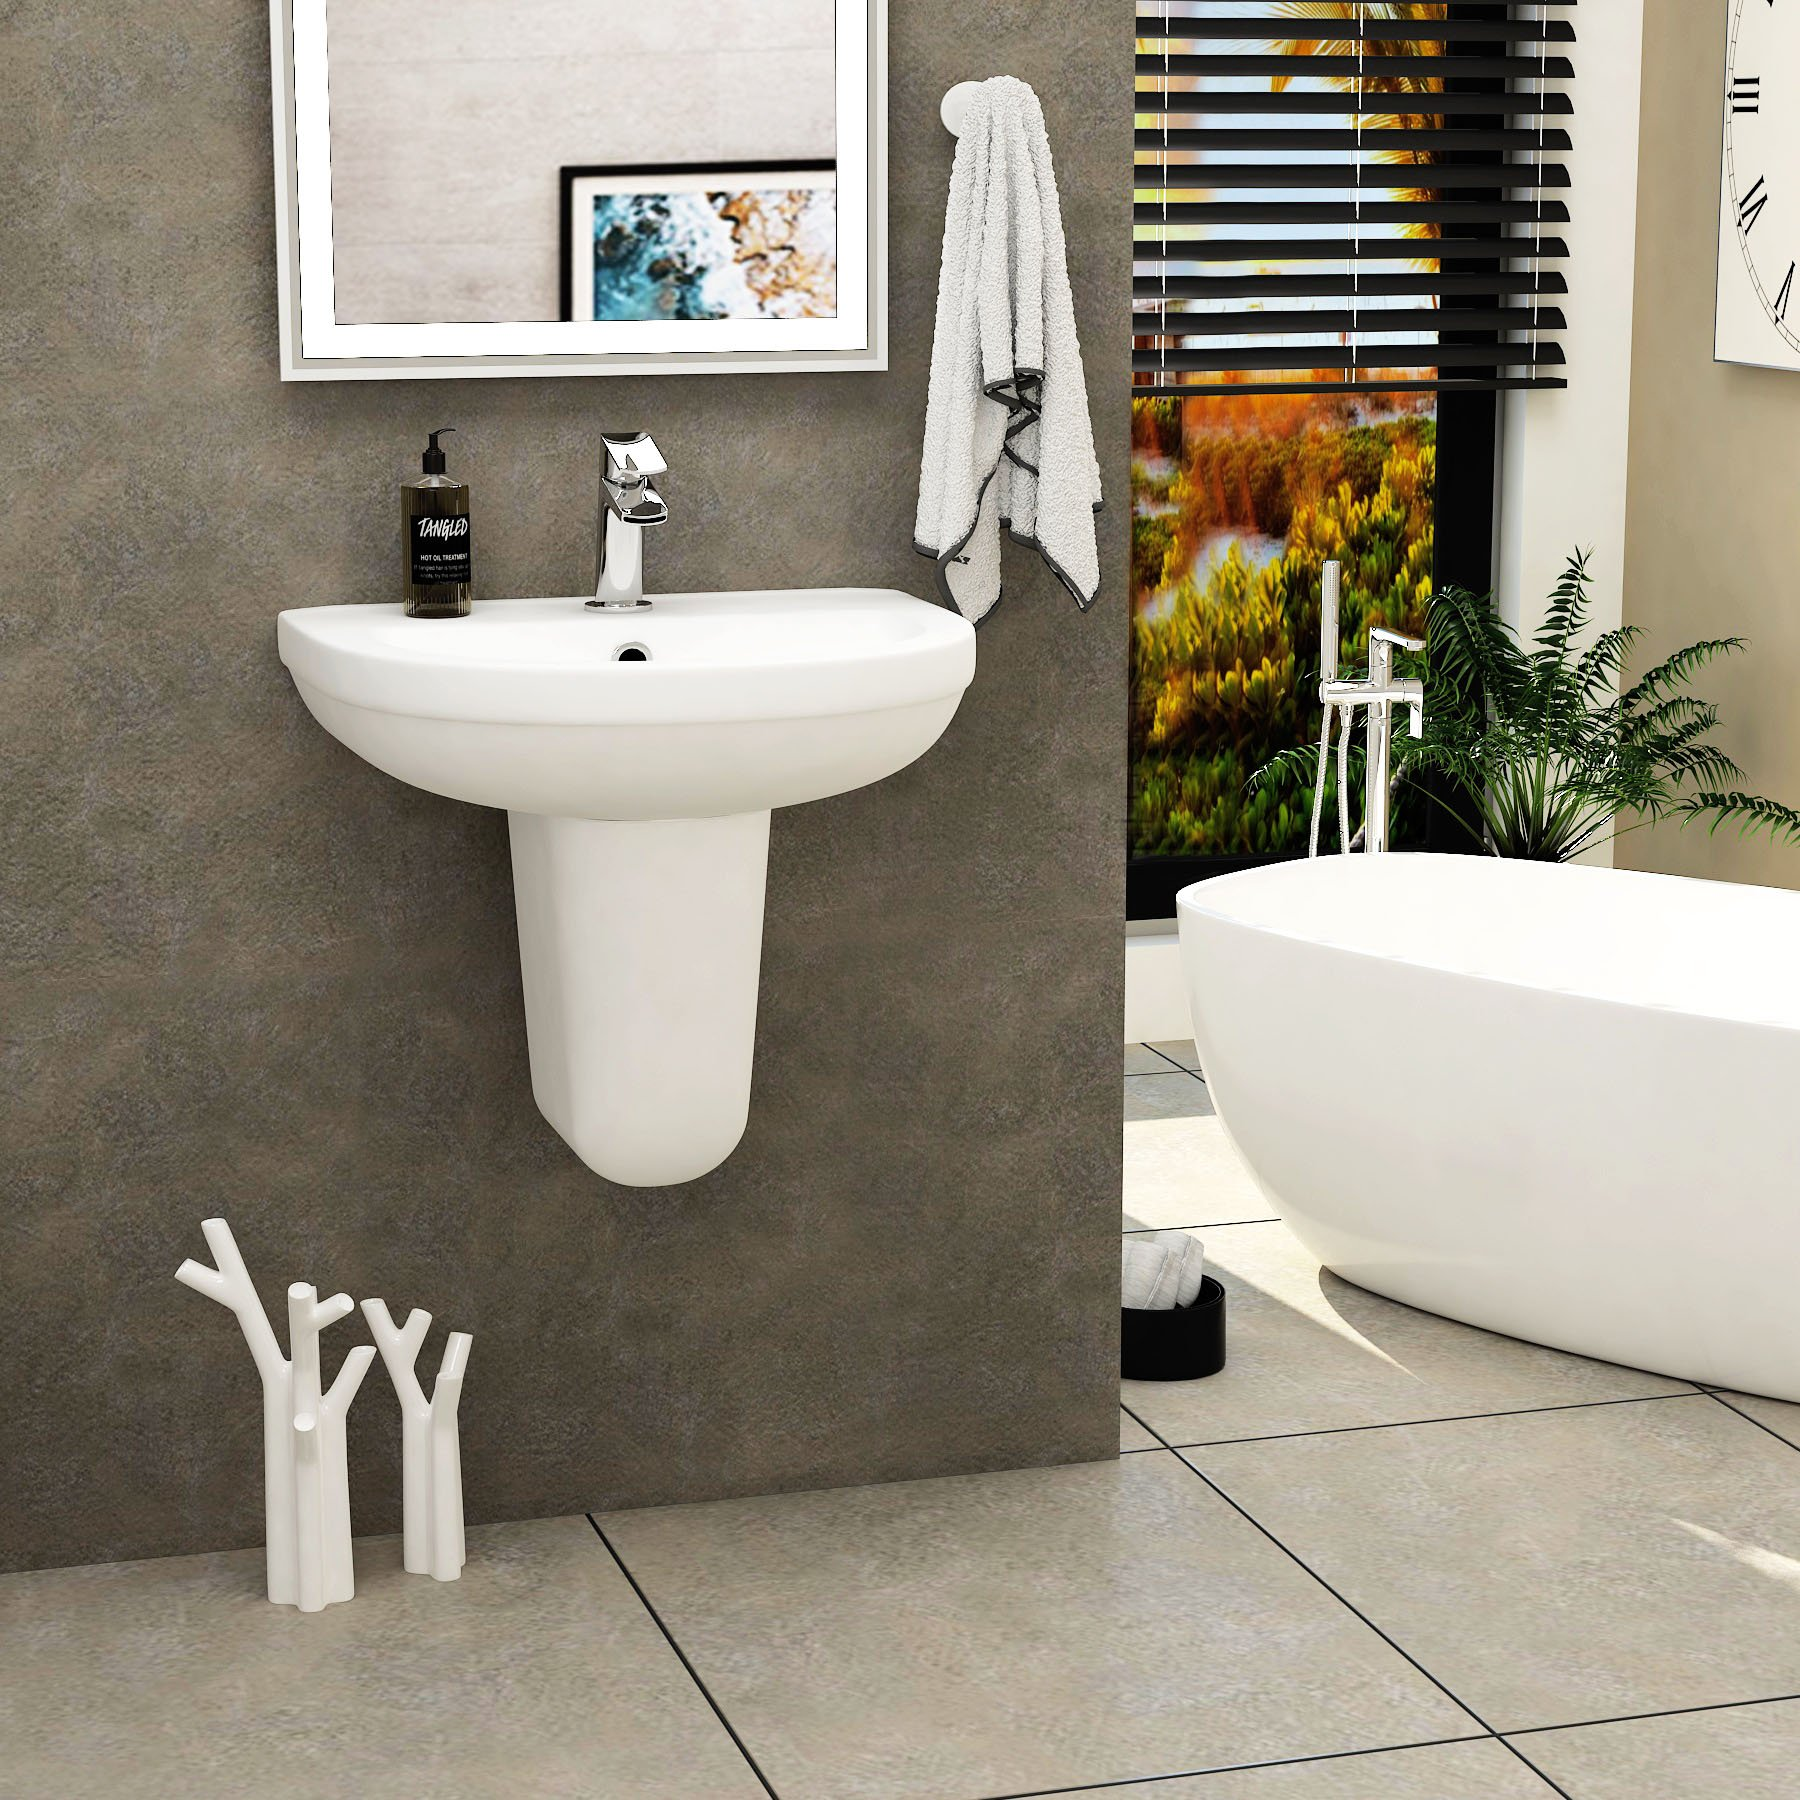 Cloakroom Basins - Buying Guide!